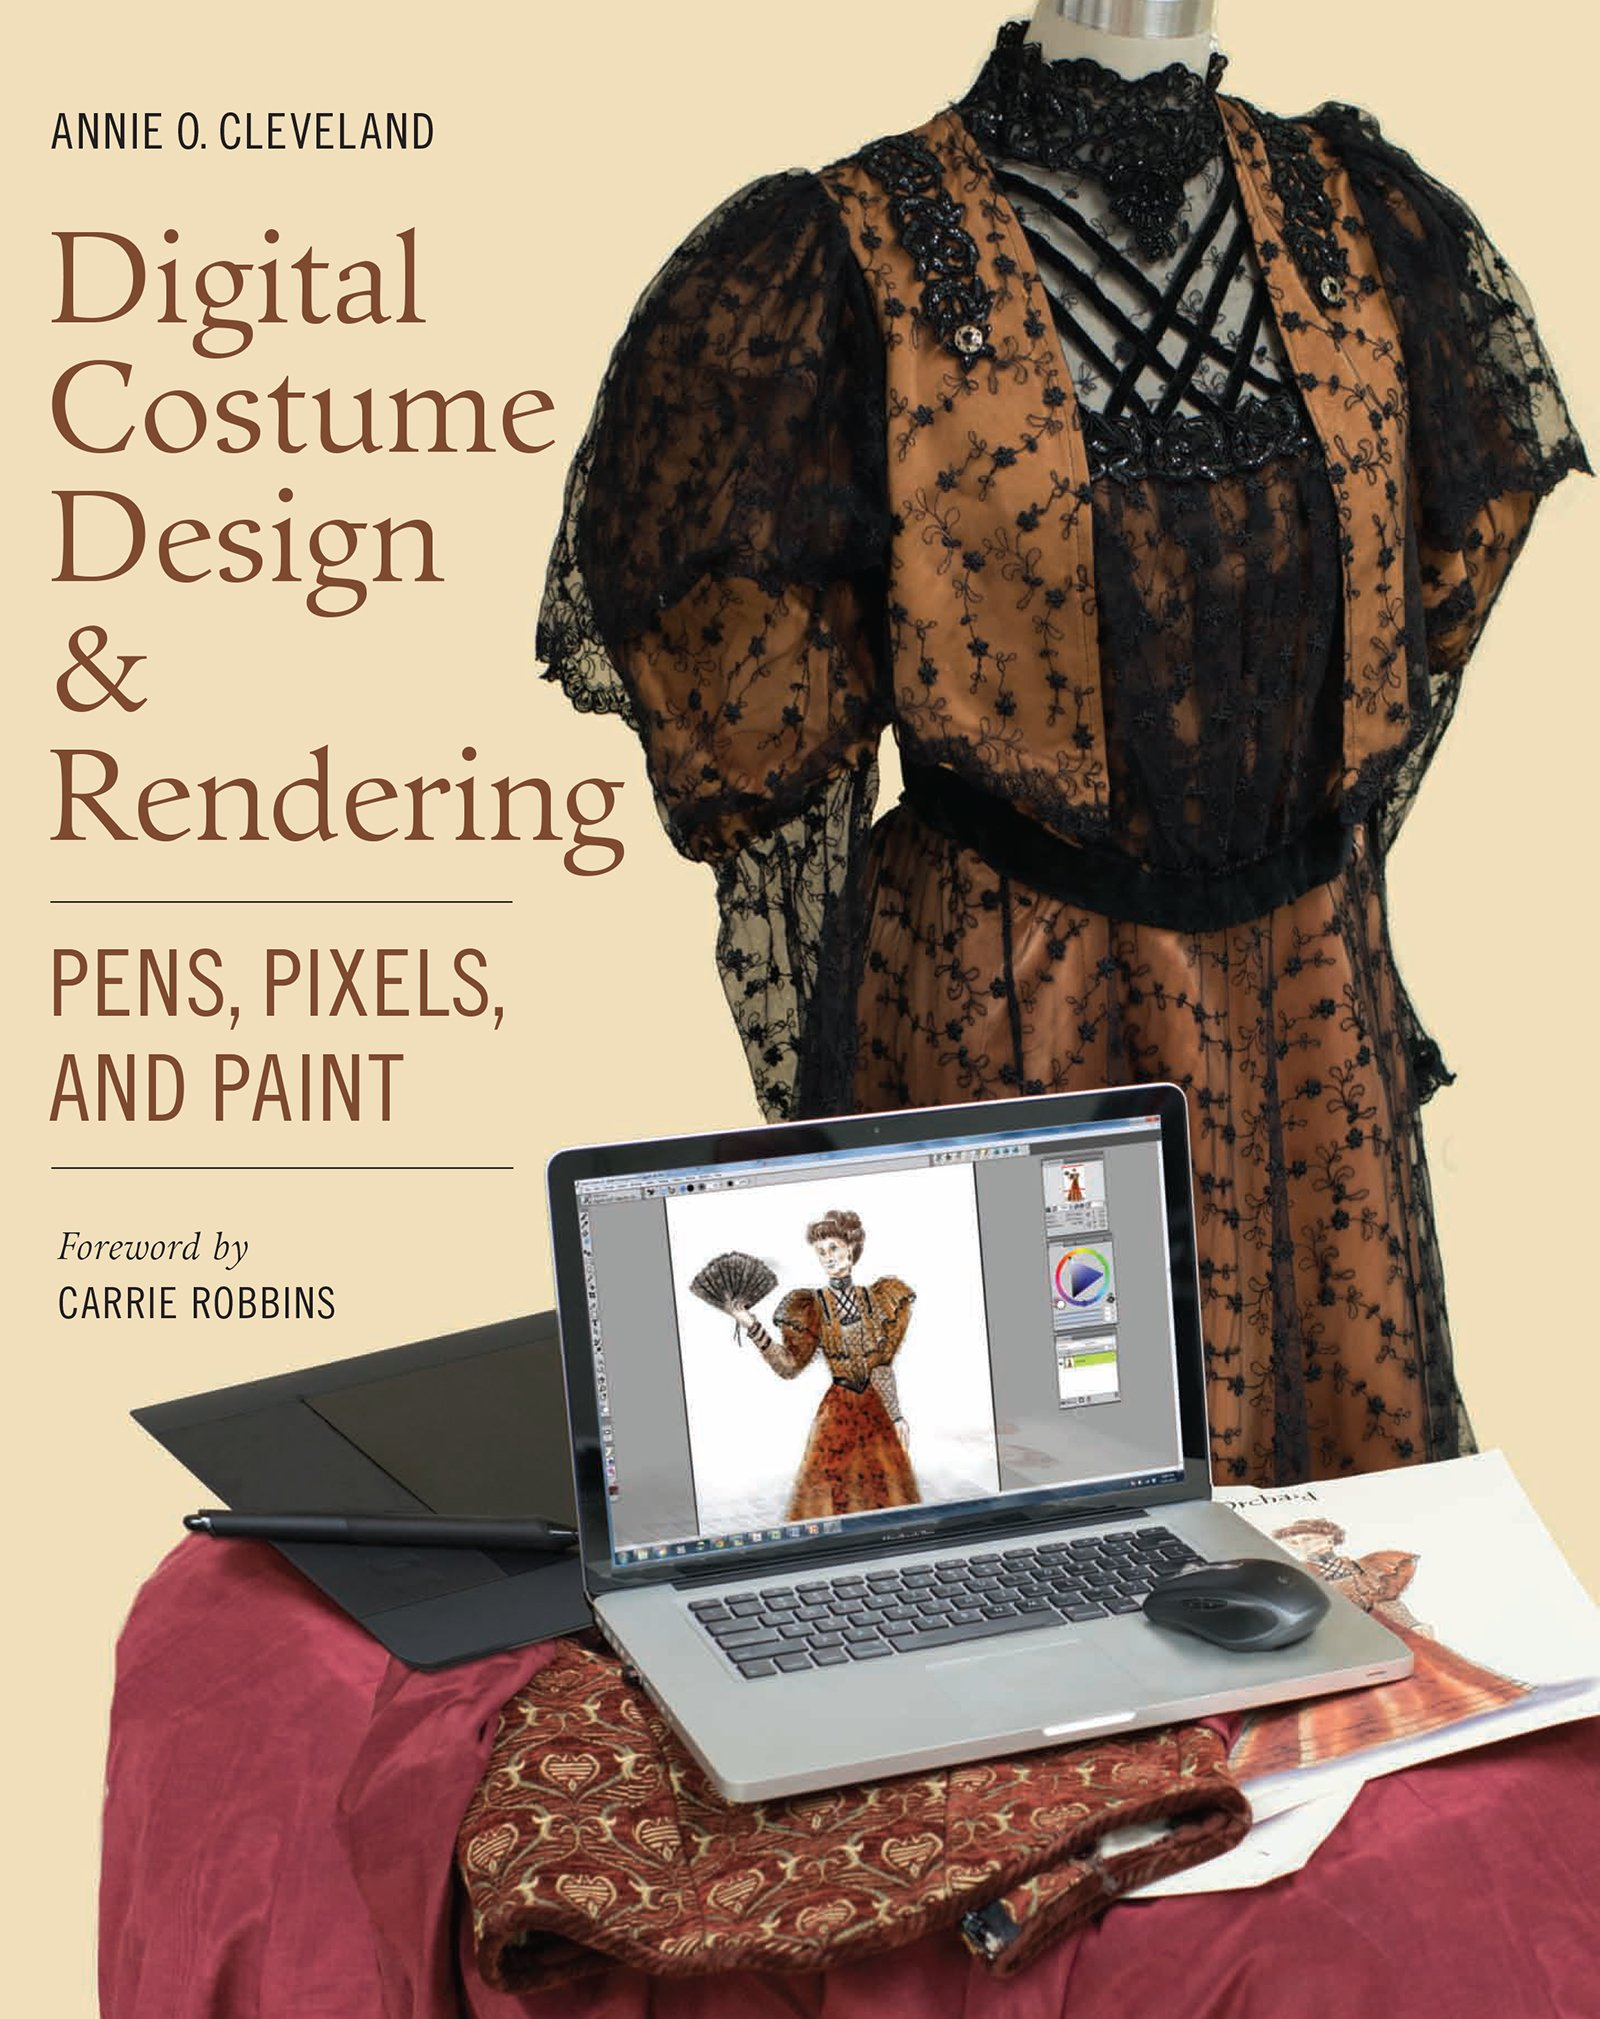 Digital Costume Design Rendering Pens Pixels And Paint Annie O Cleveland 9780896762718 Amazon Com Books